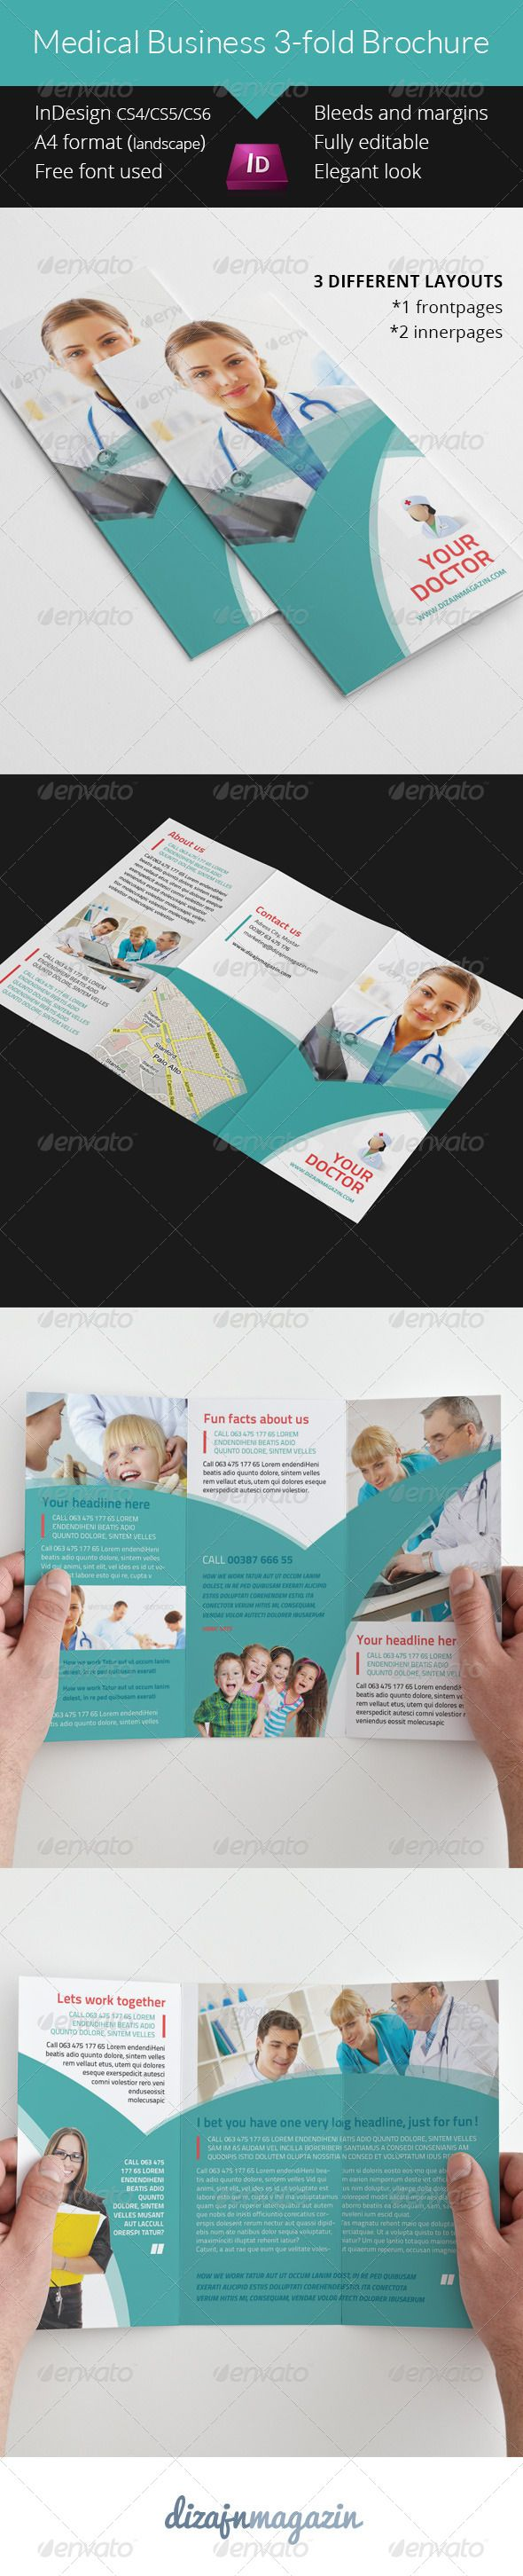 12 best templates ideas images on pinterest indesign for Indesign 3 fold brochure template